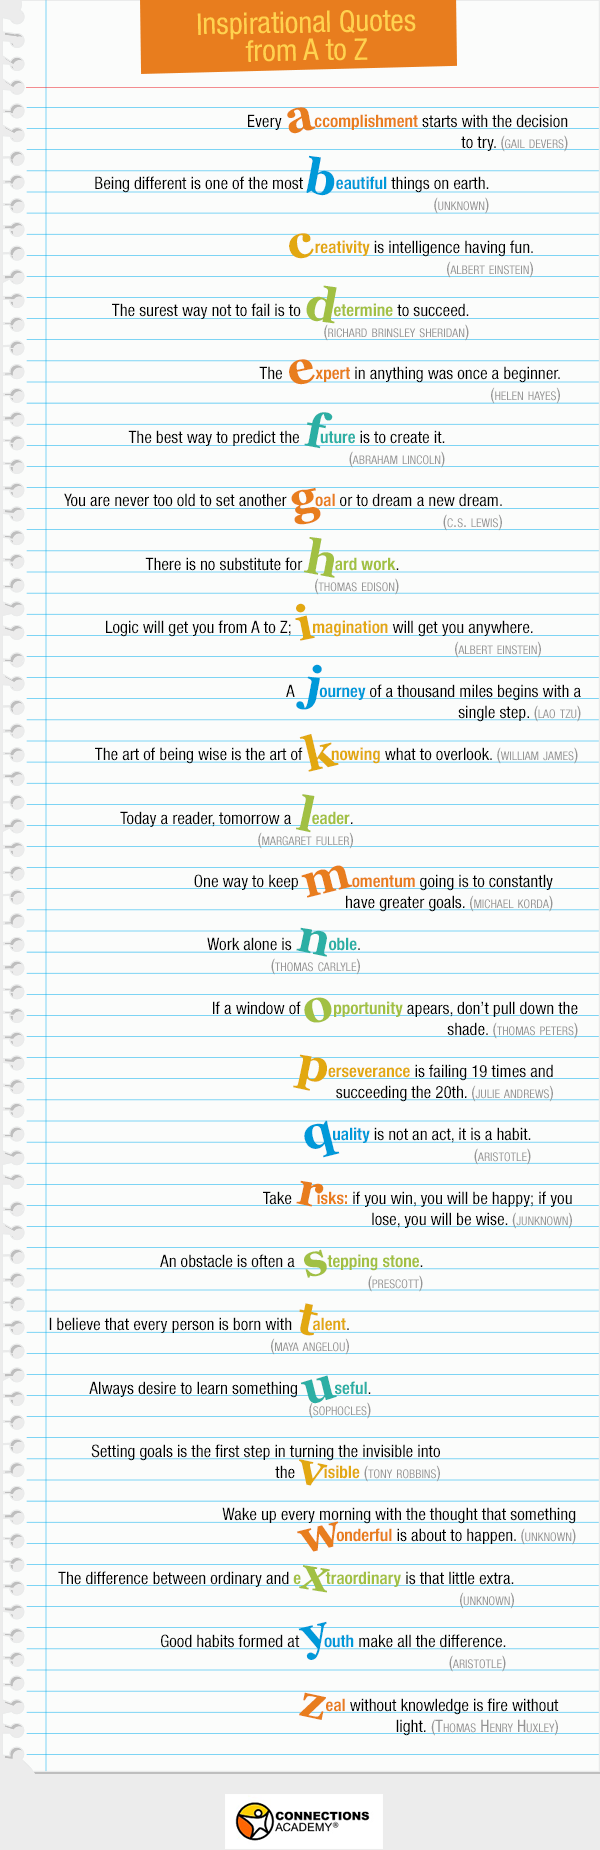 Online education quotes - Homeschool Inspiration